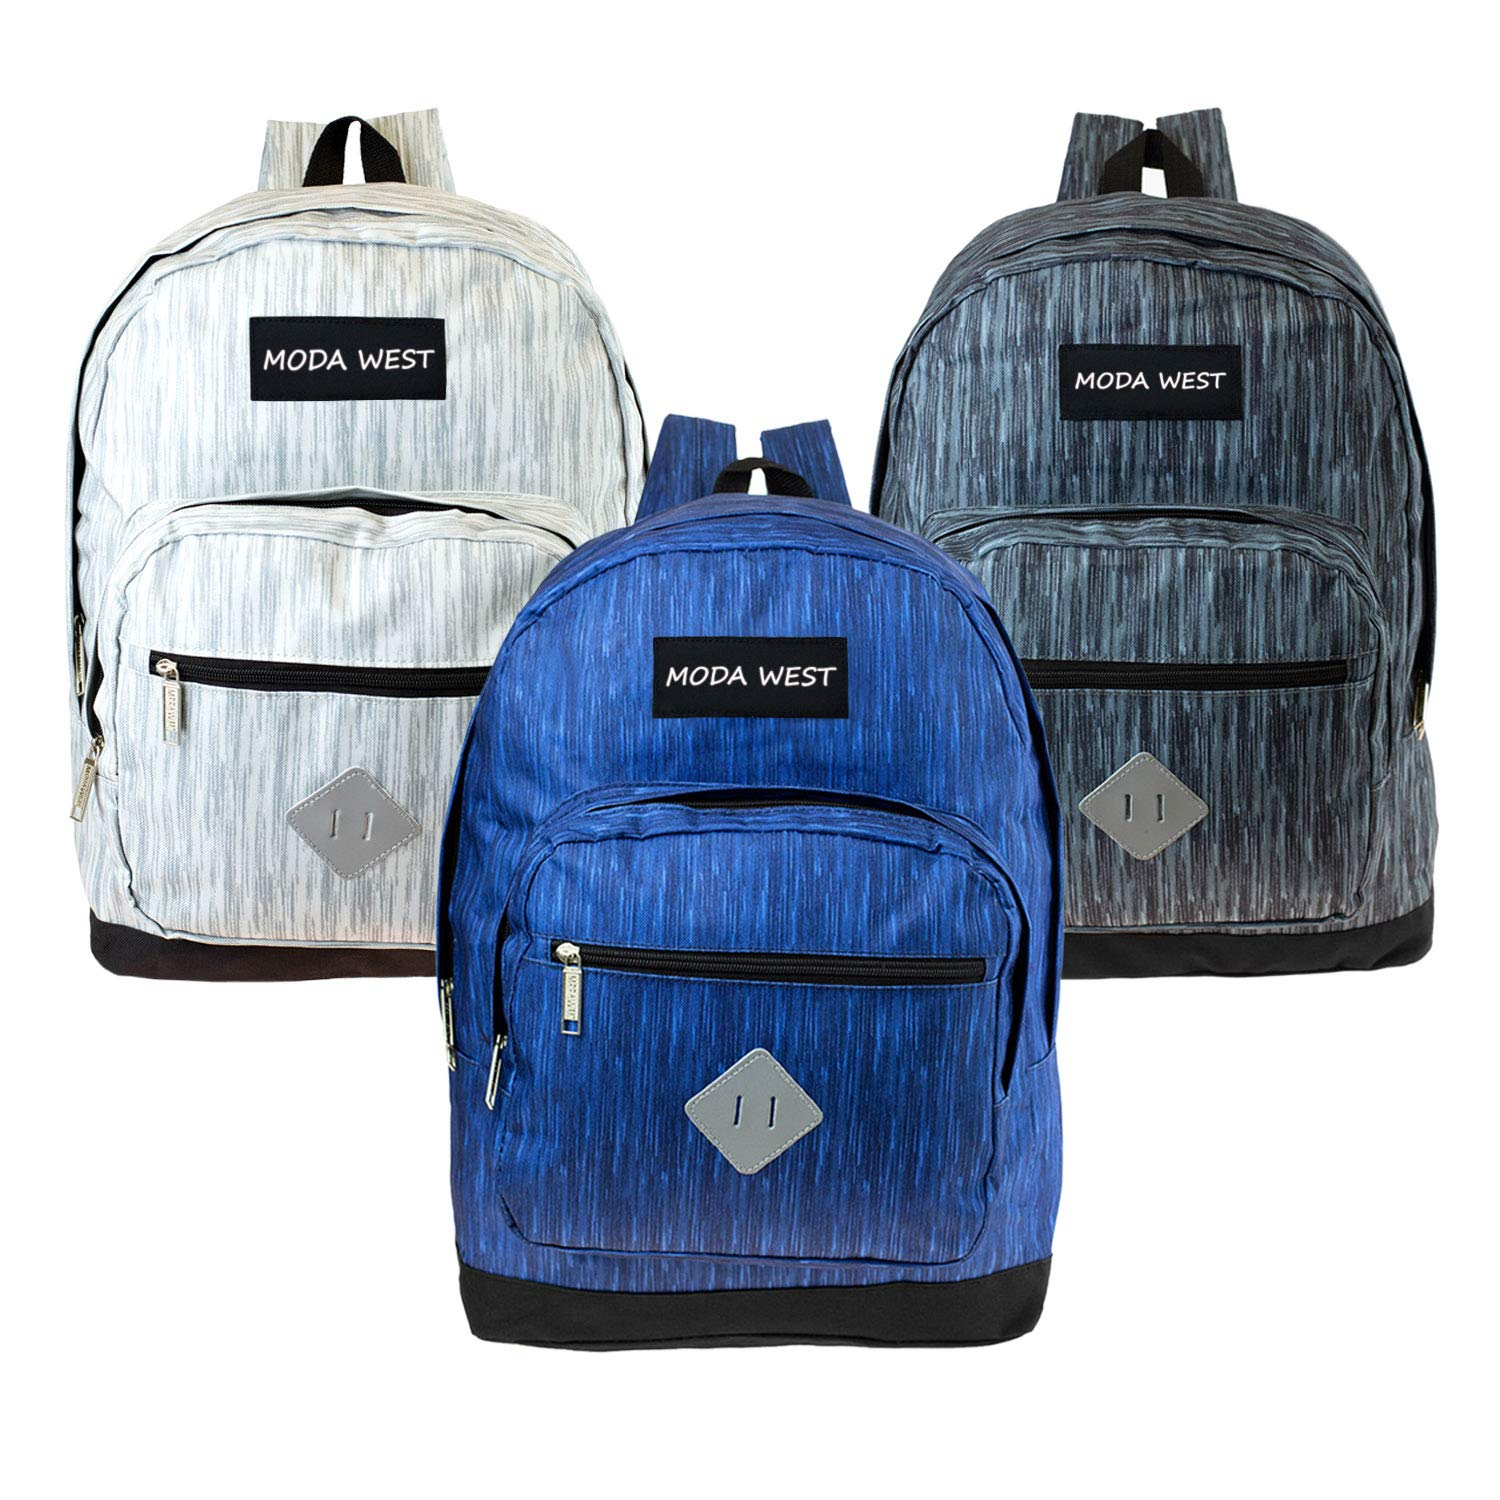 17'' Wholesale Backpack in 3 Assorted Space Dye Colors - Bulk Case of 24 Bookbags